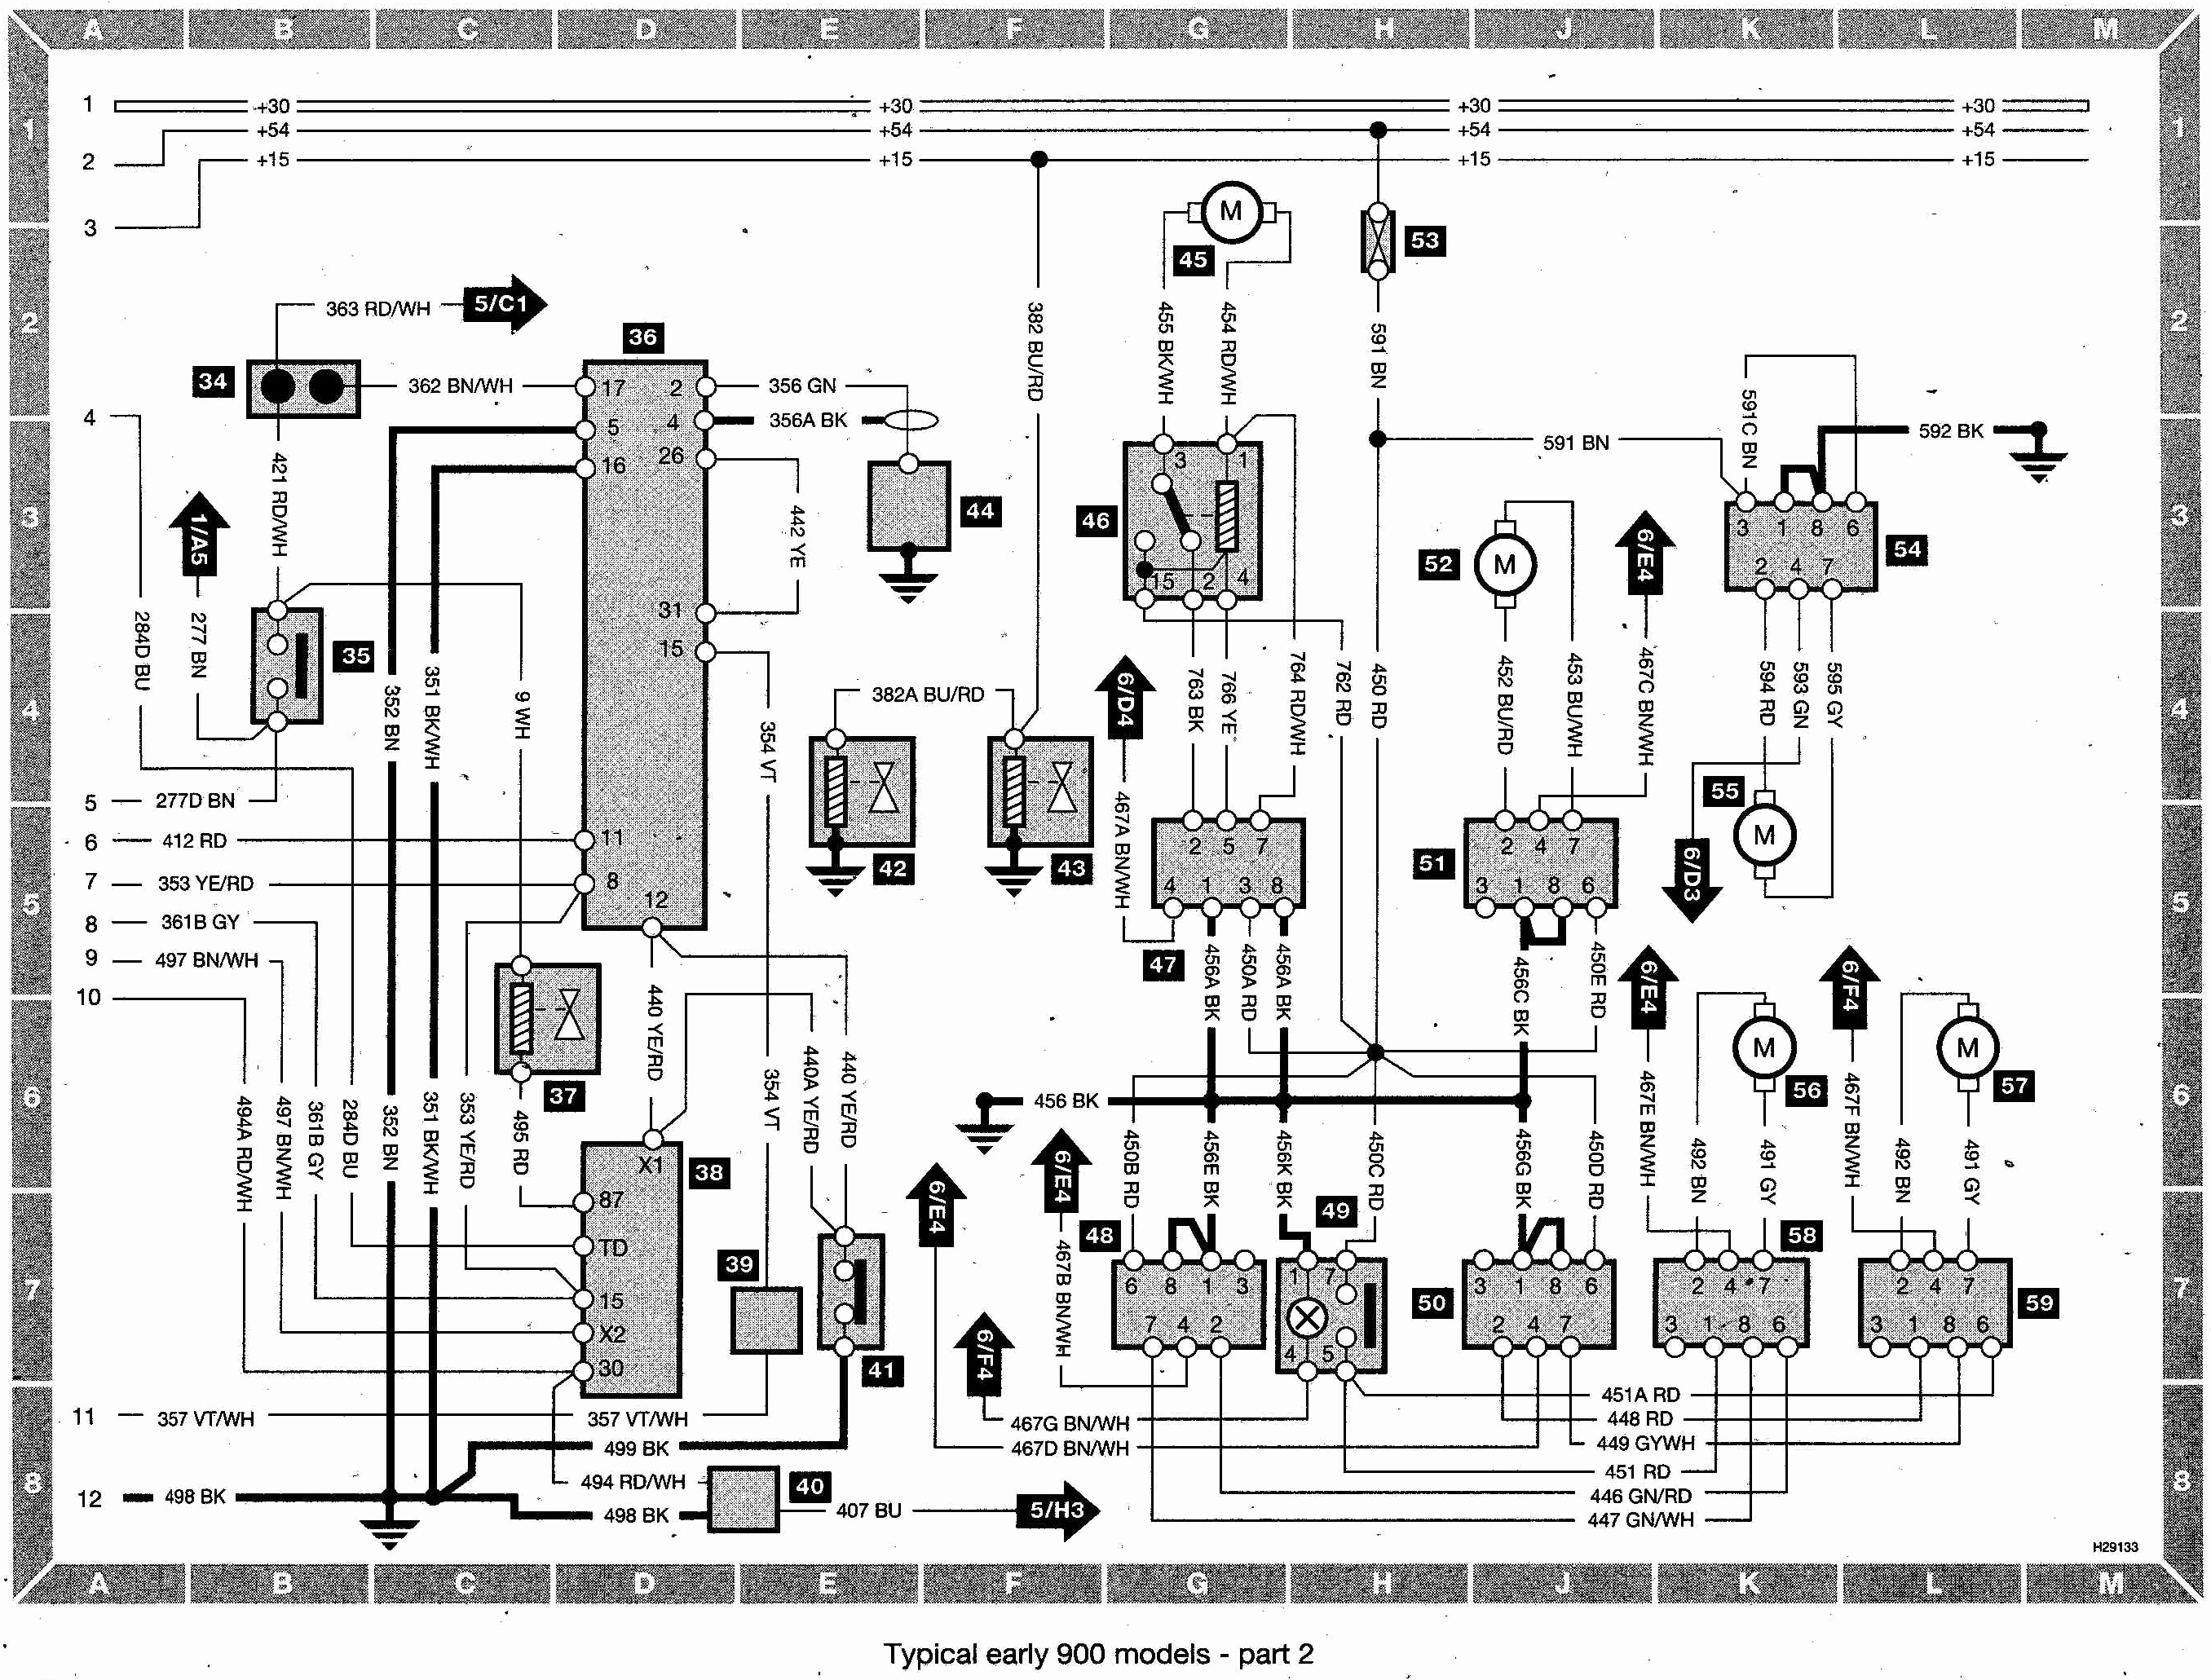 Saab 900 Wiring Diagram Collection